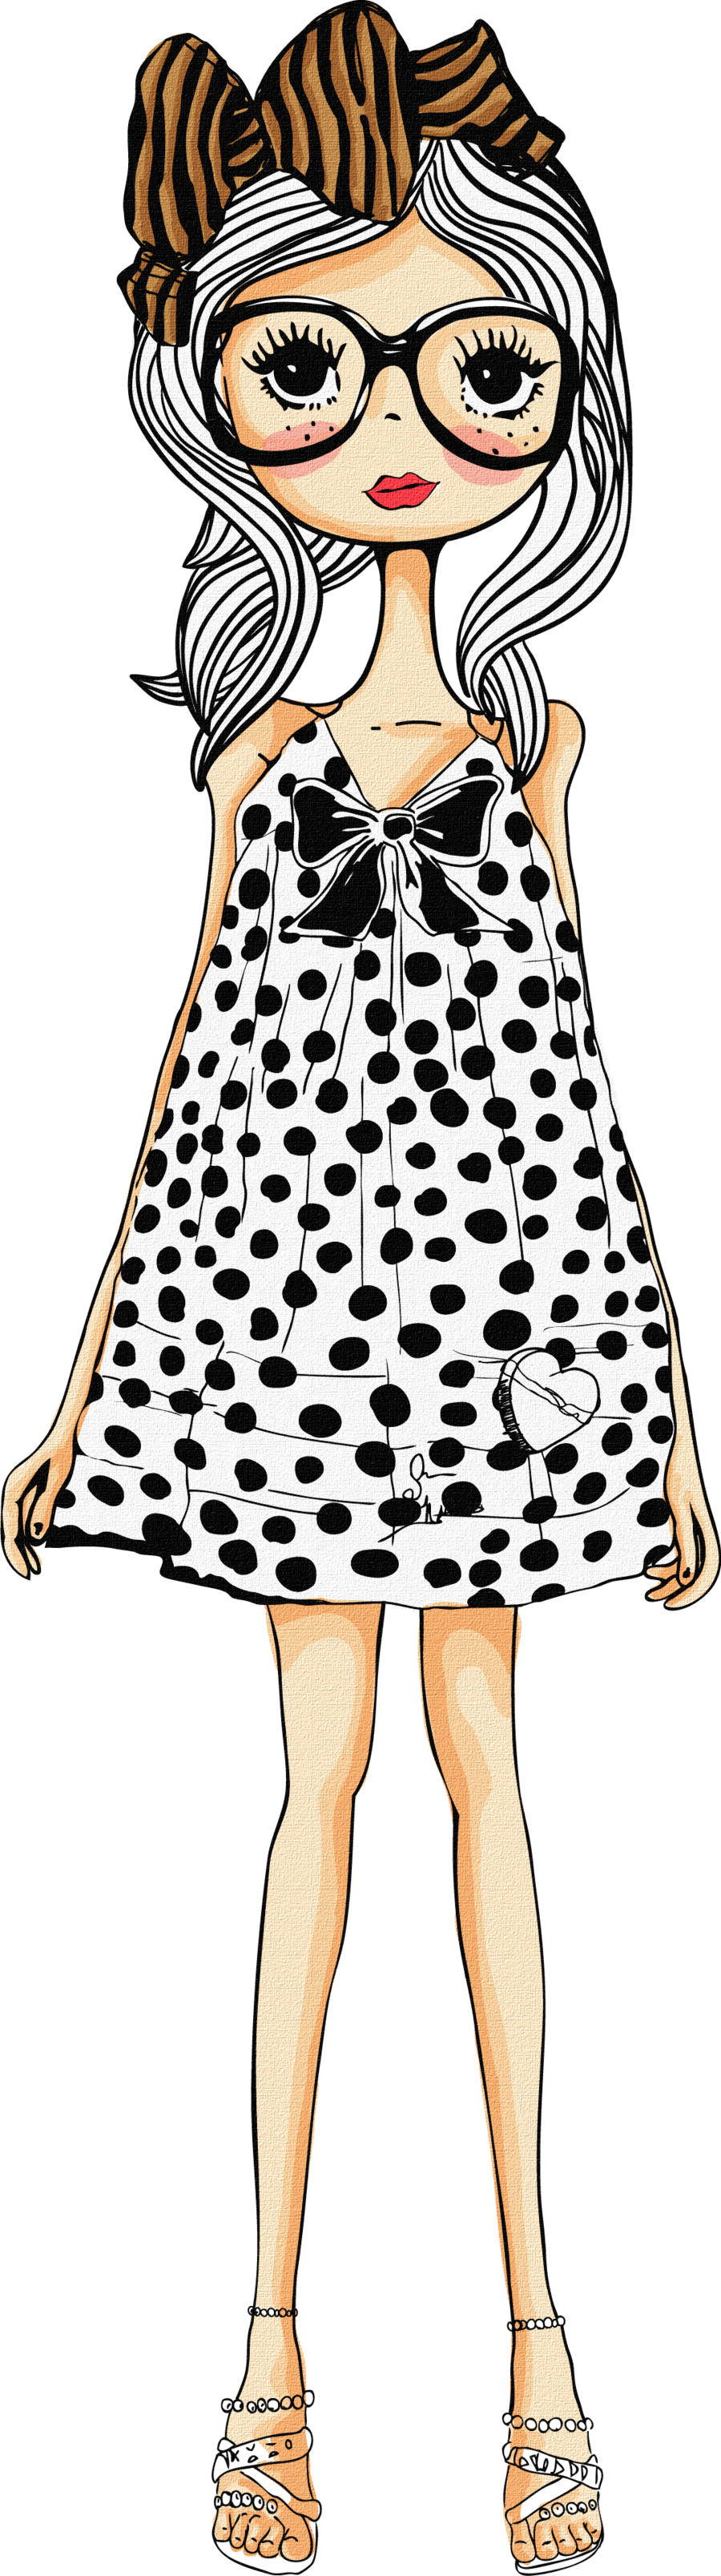 Clothing clipart clothes design. Doll png by julii